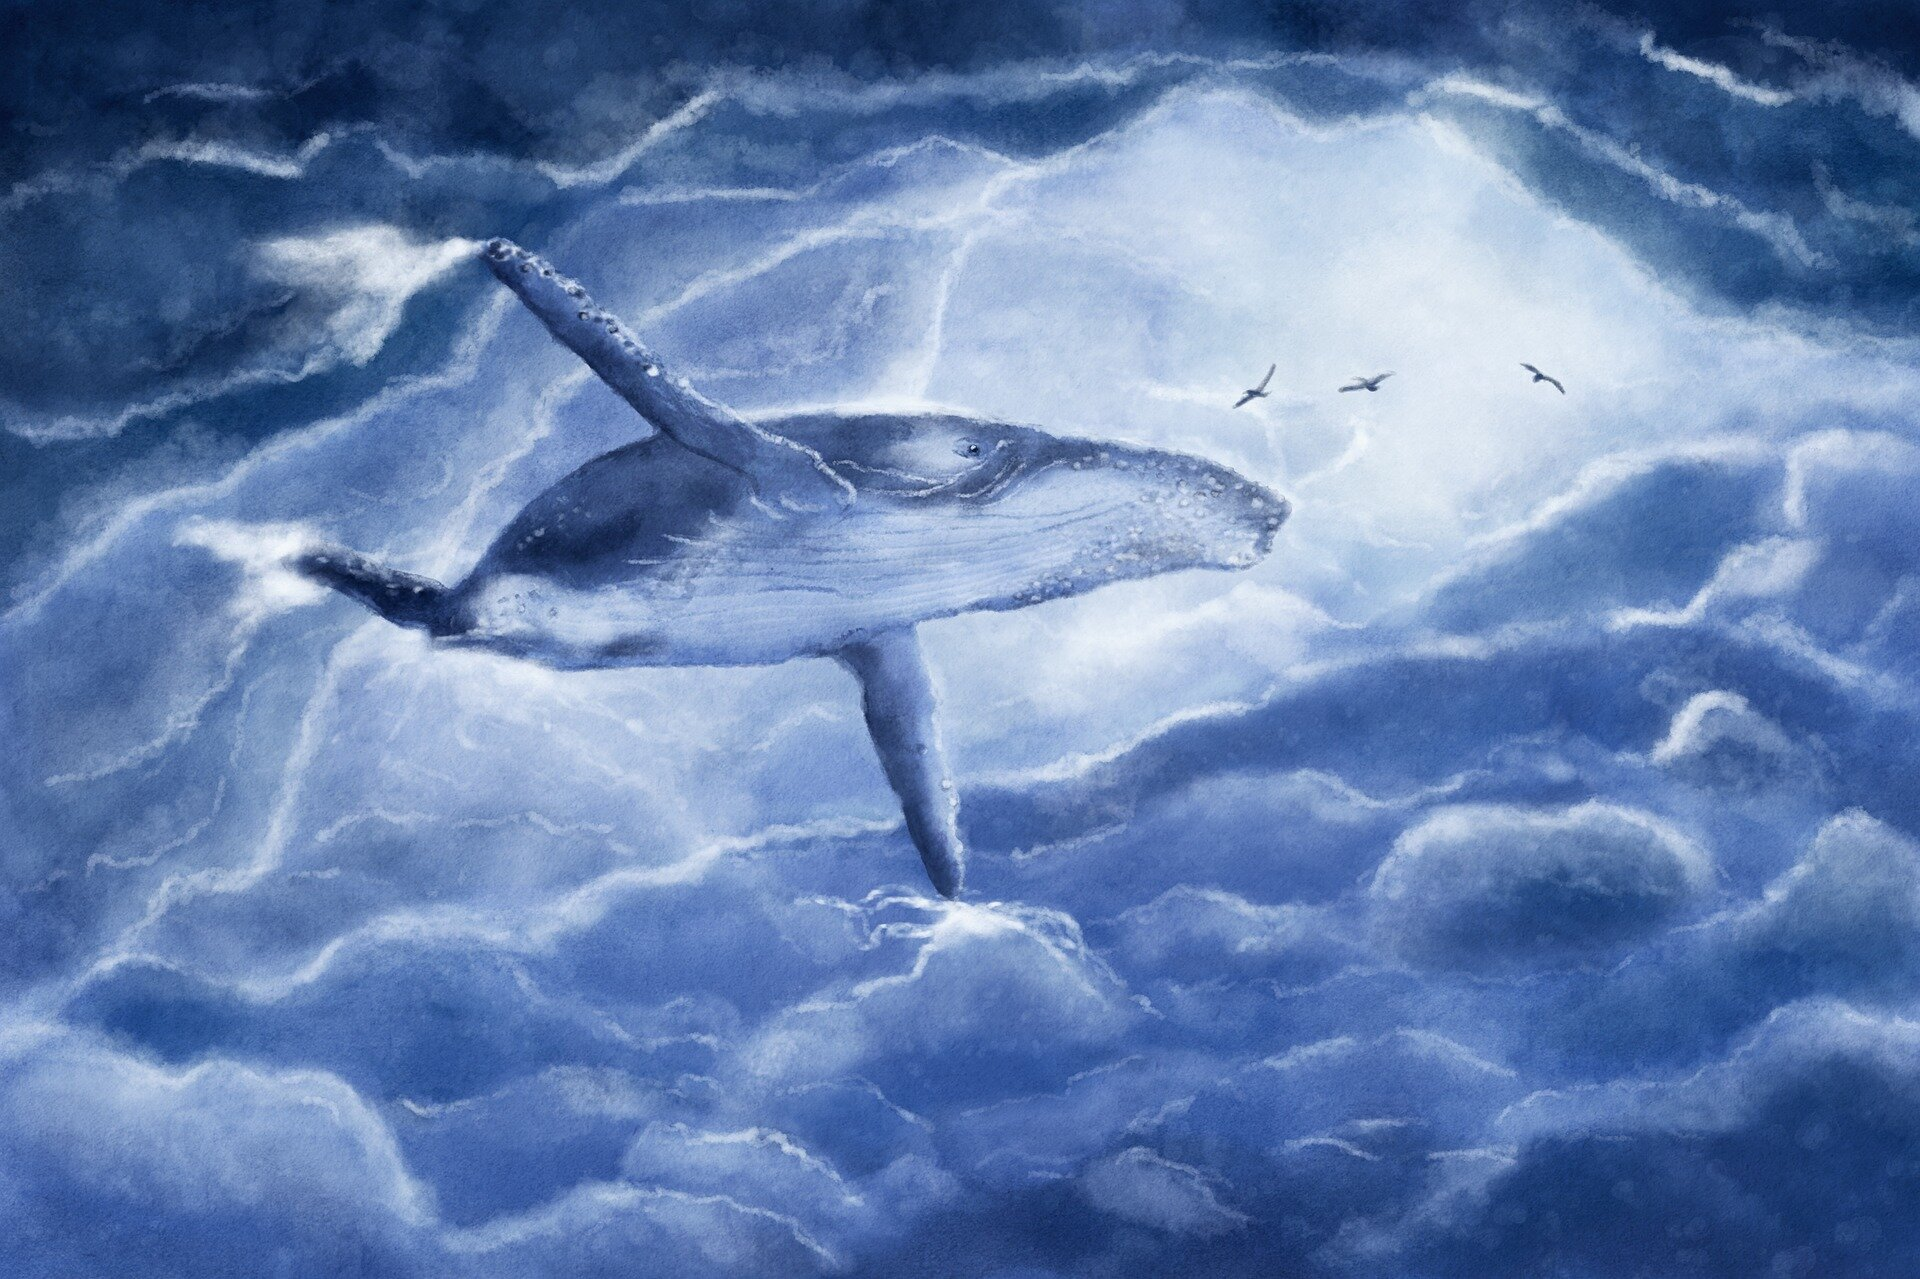 Study shows a whale of a difference between songs of birds and humpbacks